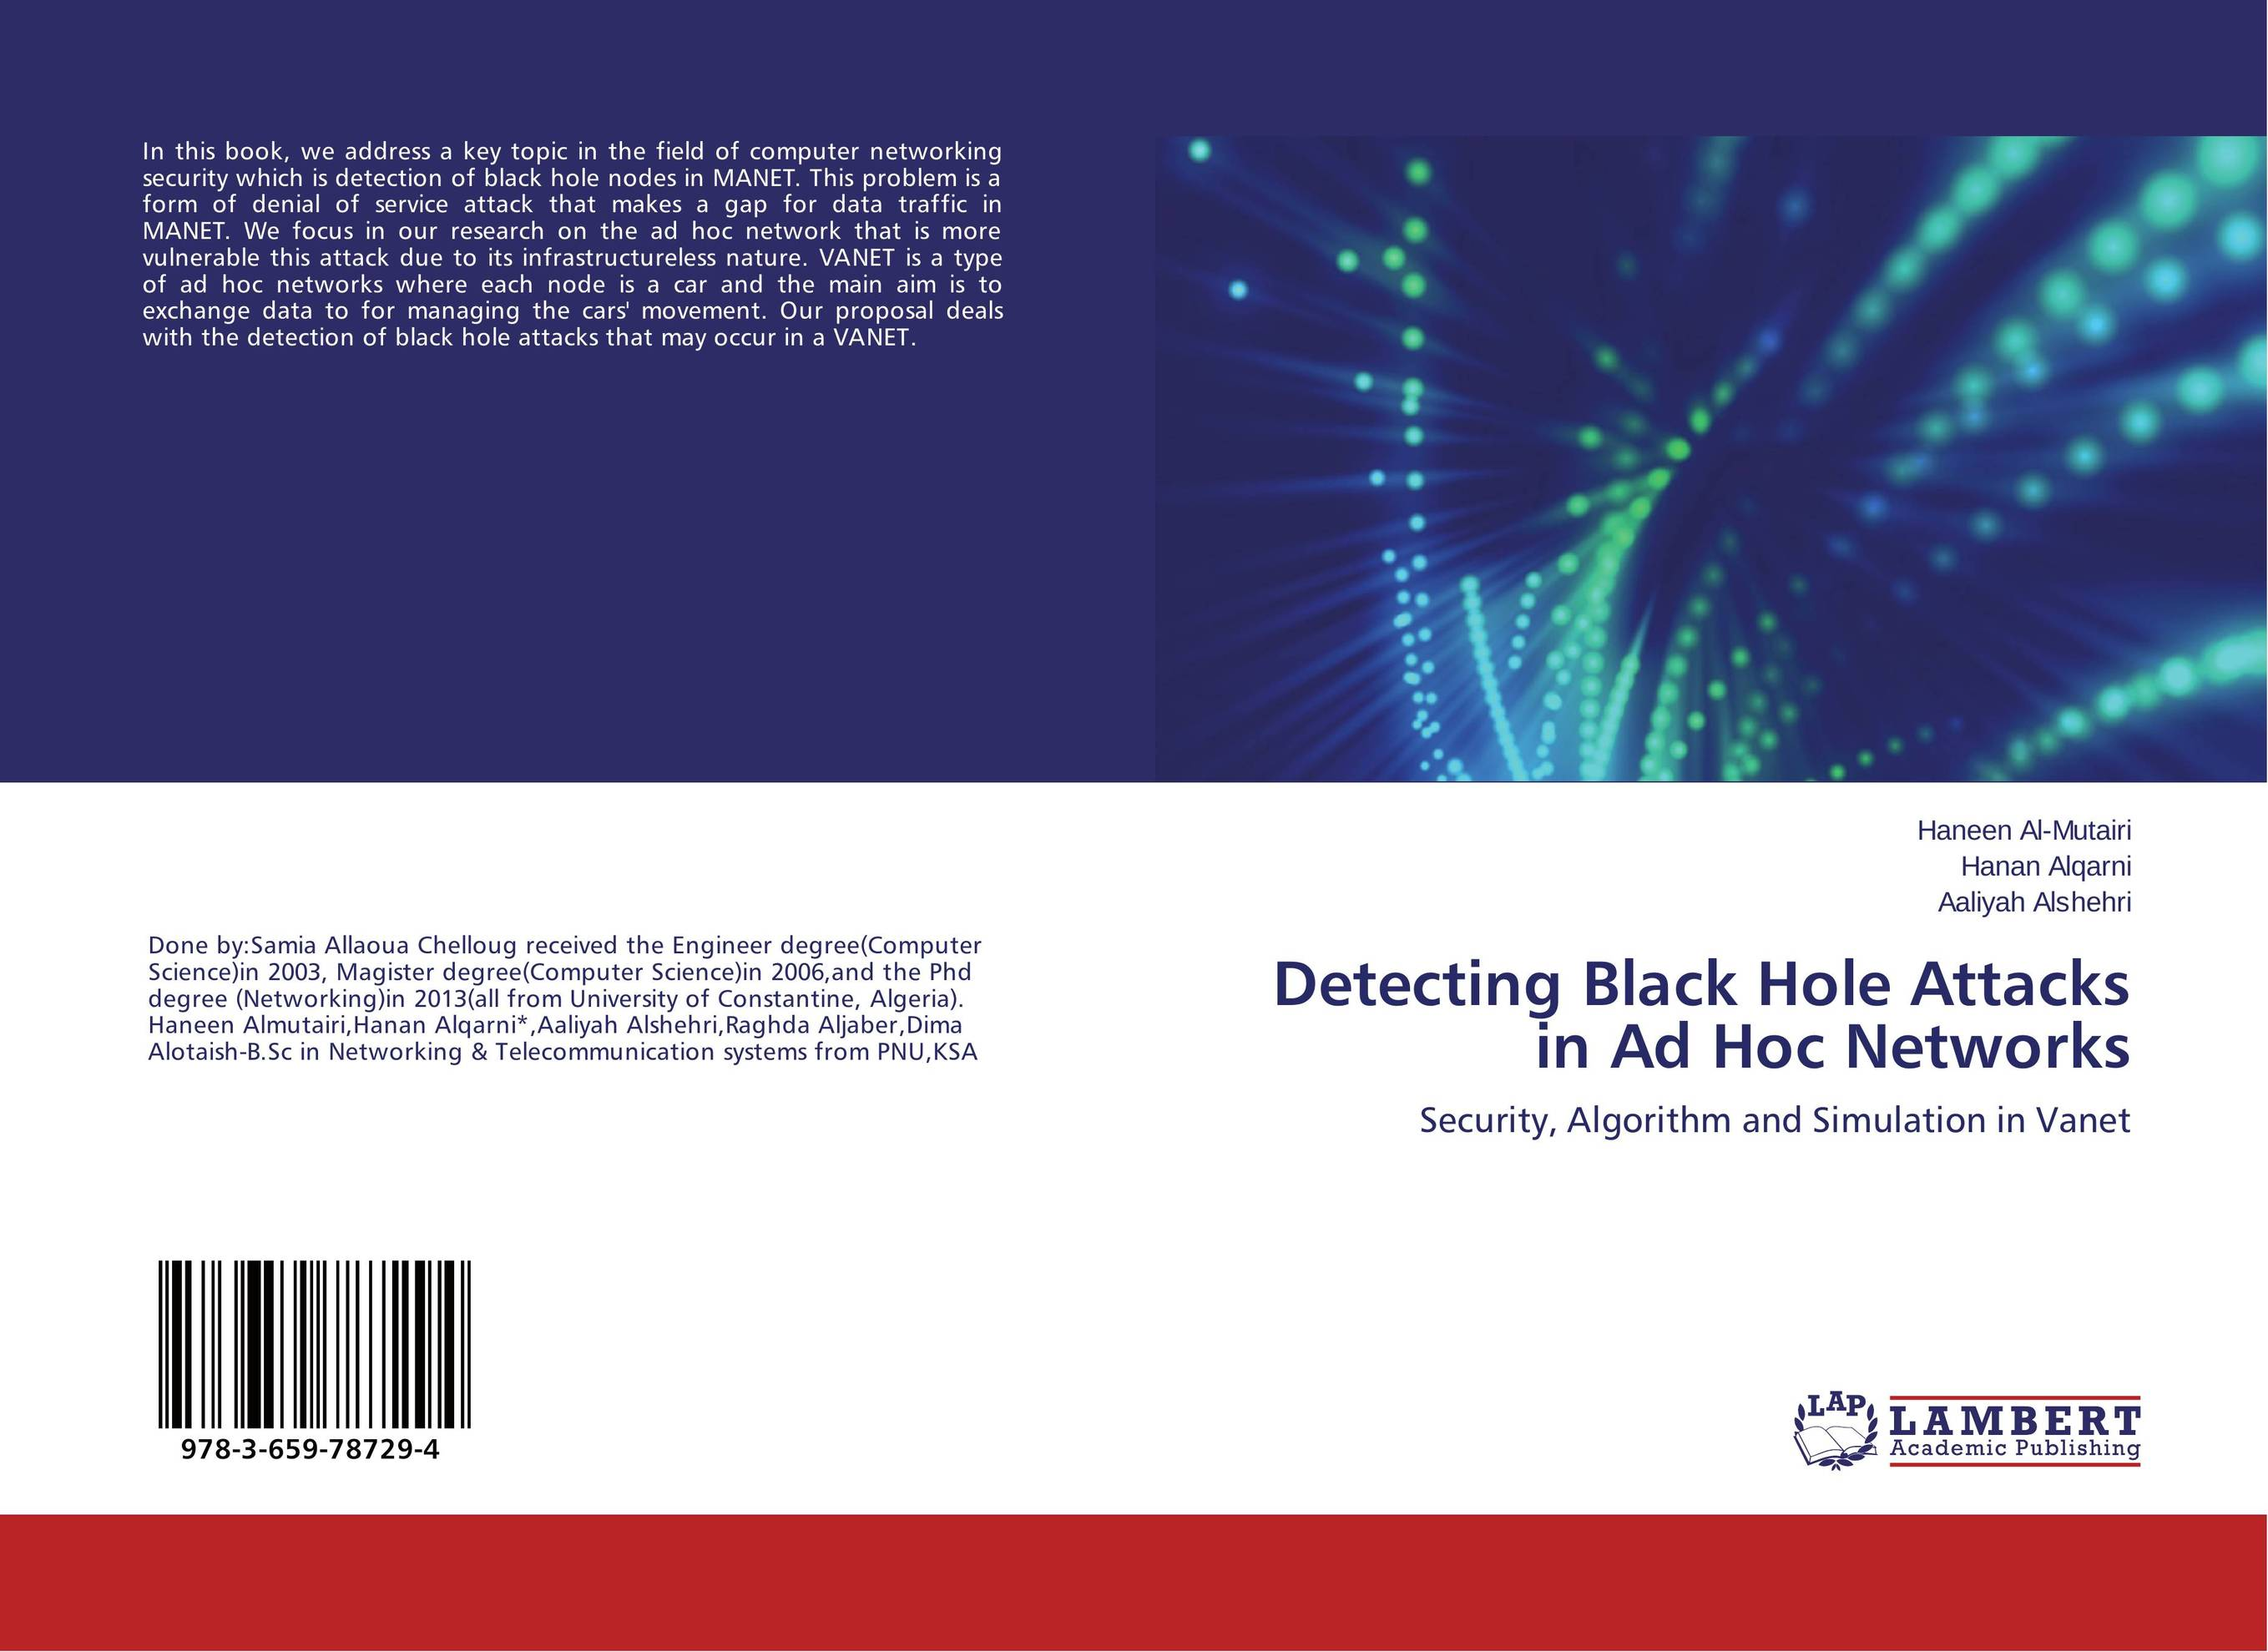 Detecting Black Hole Attacks in Ad Hoc Networks managing the store